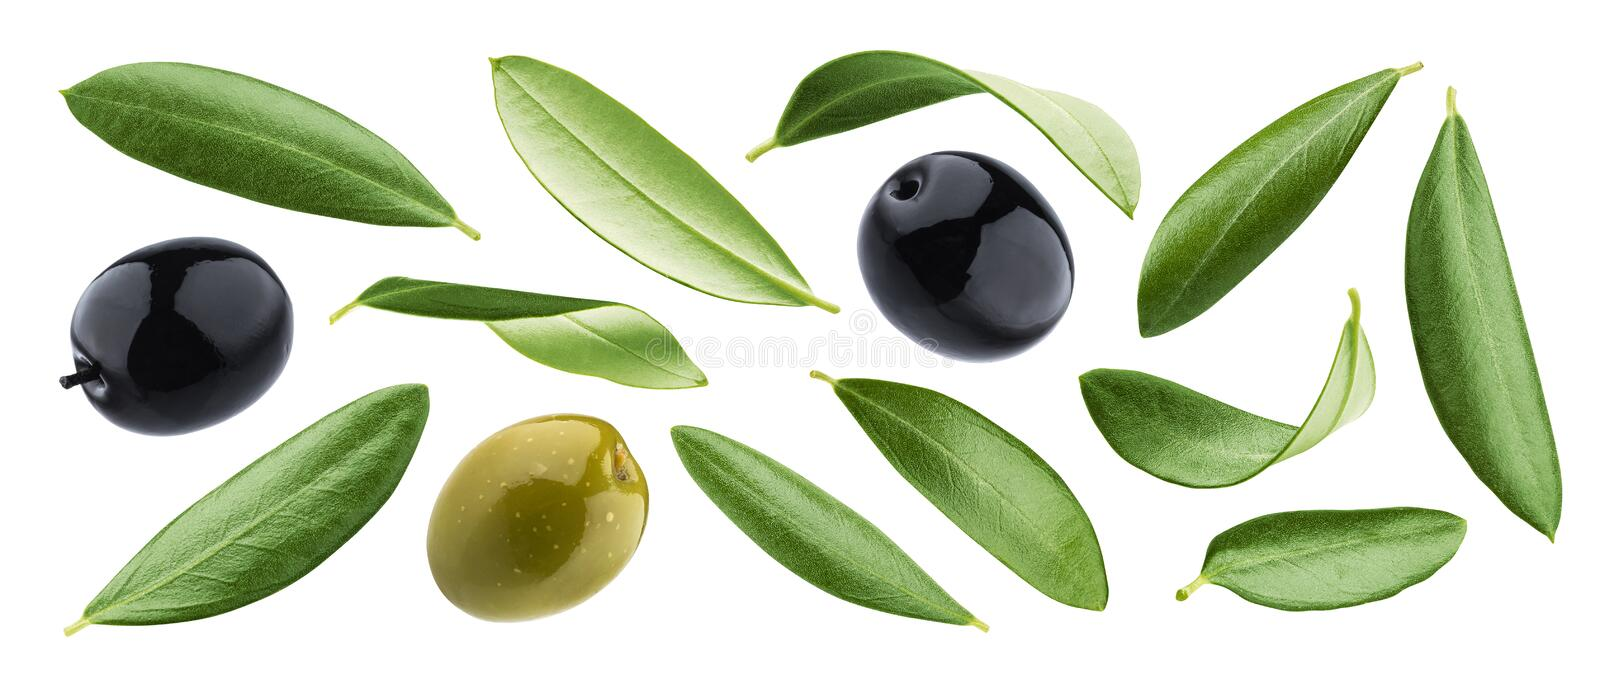 Black and green olives with leaves isolated on white background royalty free stock photo